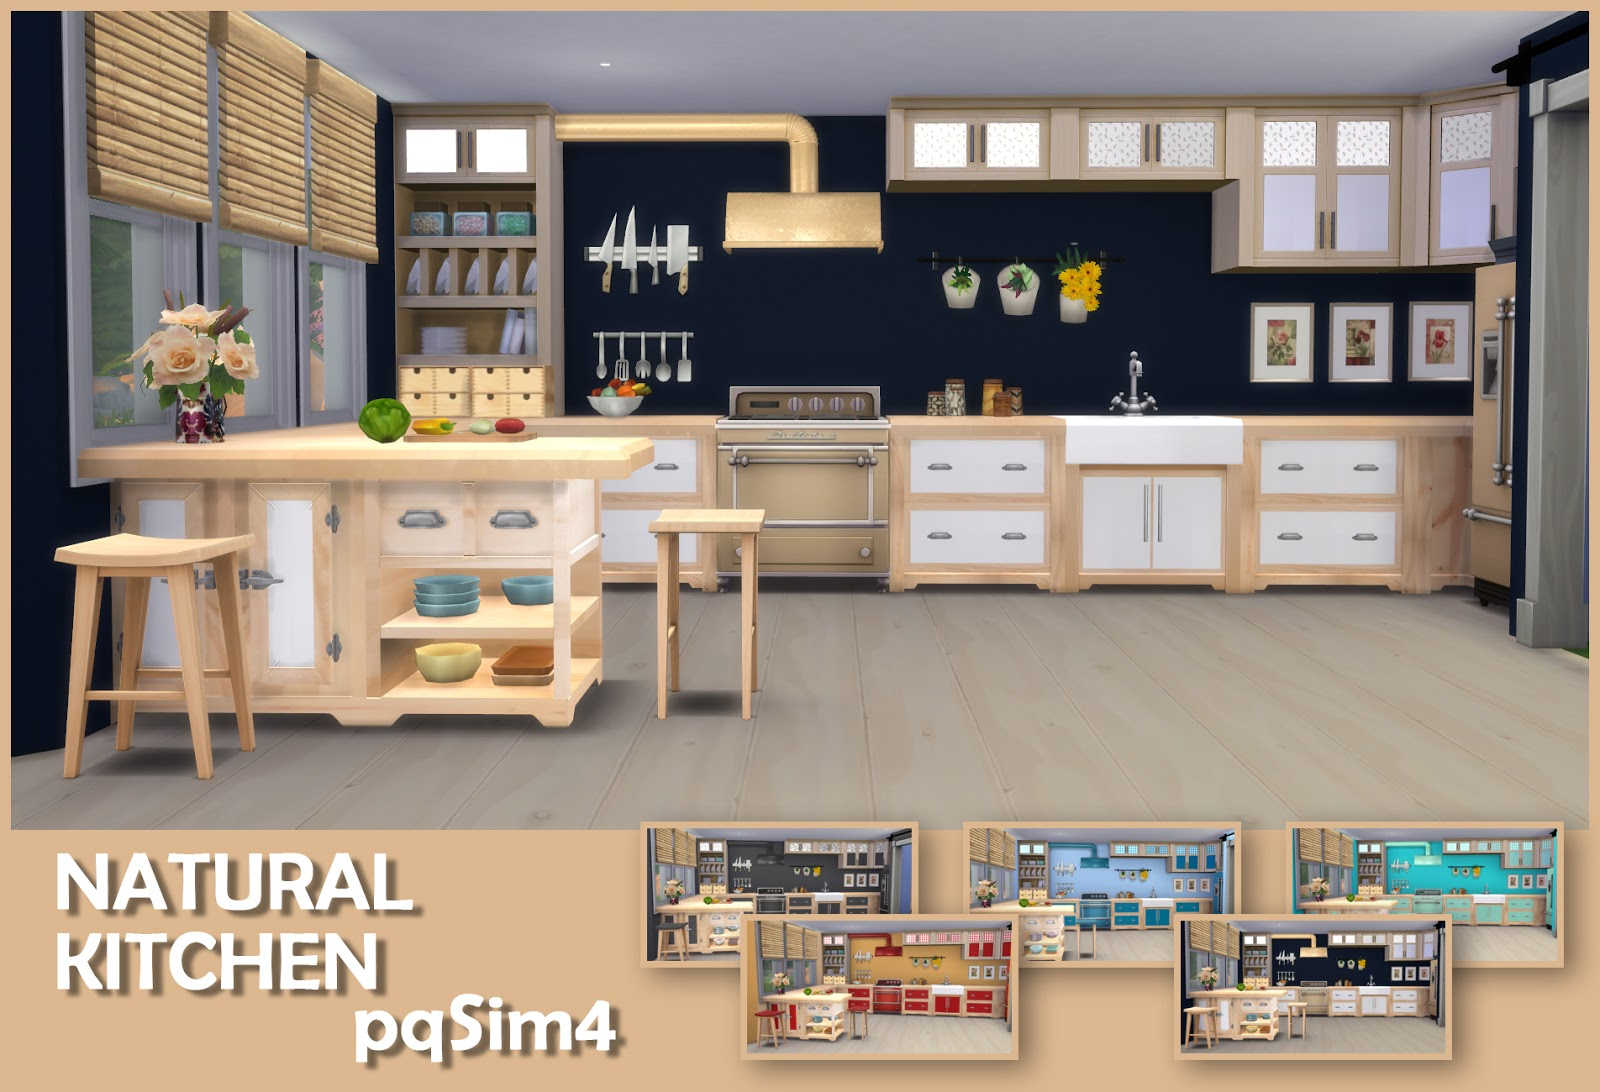 sims 4 cc's - the best: natural kitchen by pqsim4, Badezimmer ideen